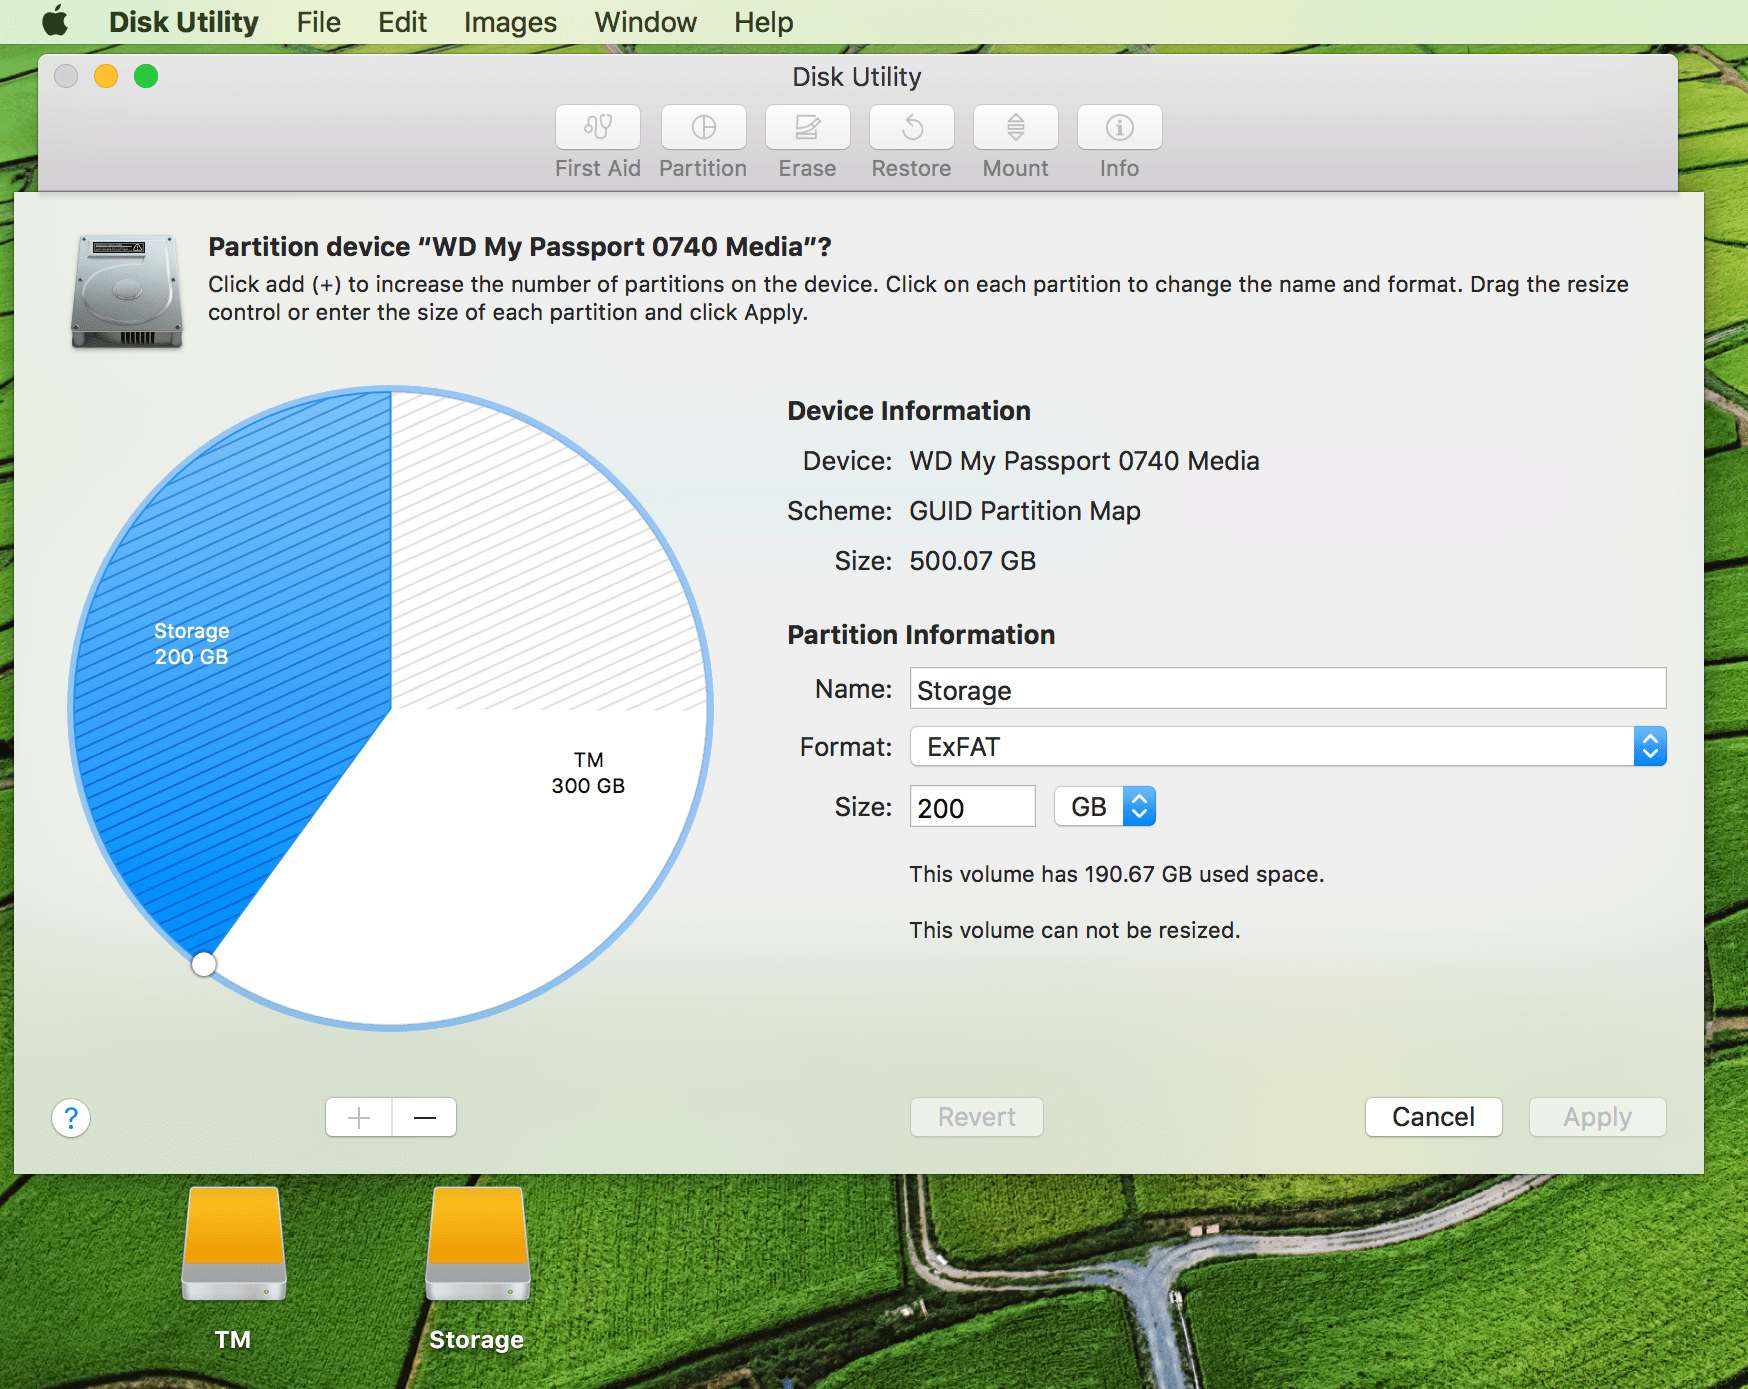 How to remove disk partitions on a Mac with Disk Utility